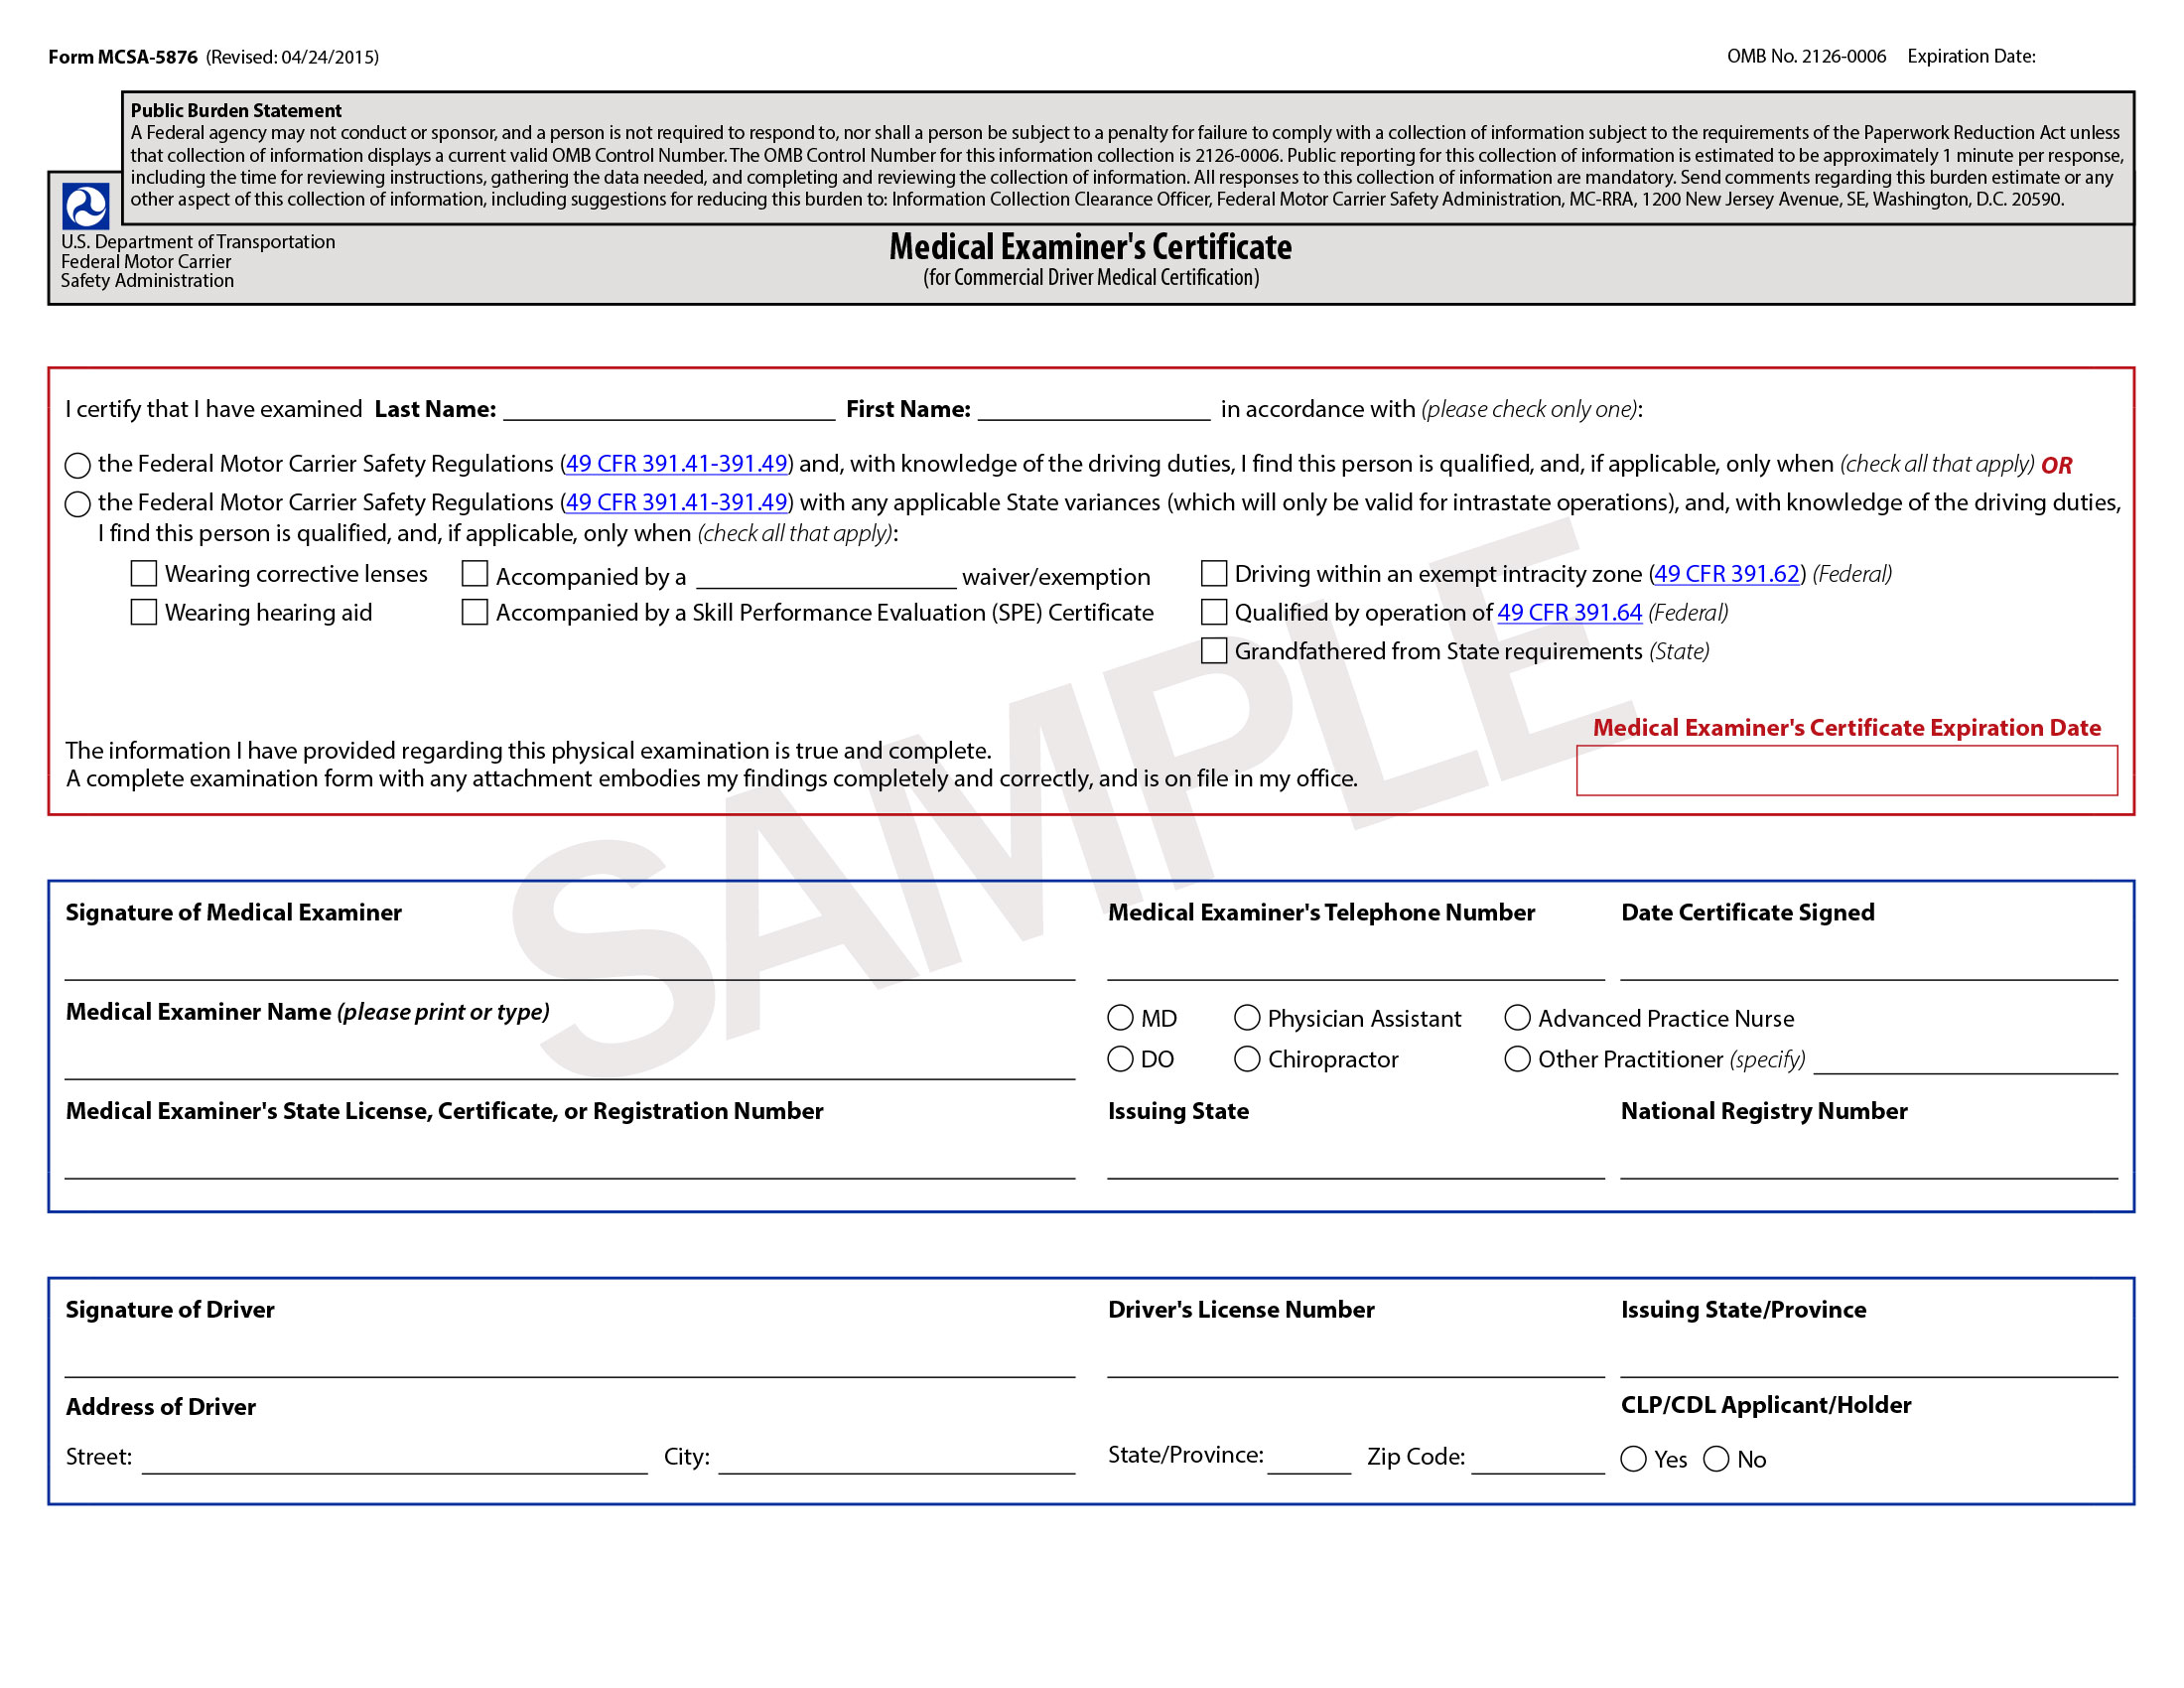 certificate medical dot physical forms dmv template cdl certification pa doctors templates form formats sample 5876 mcsa universal